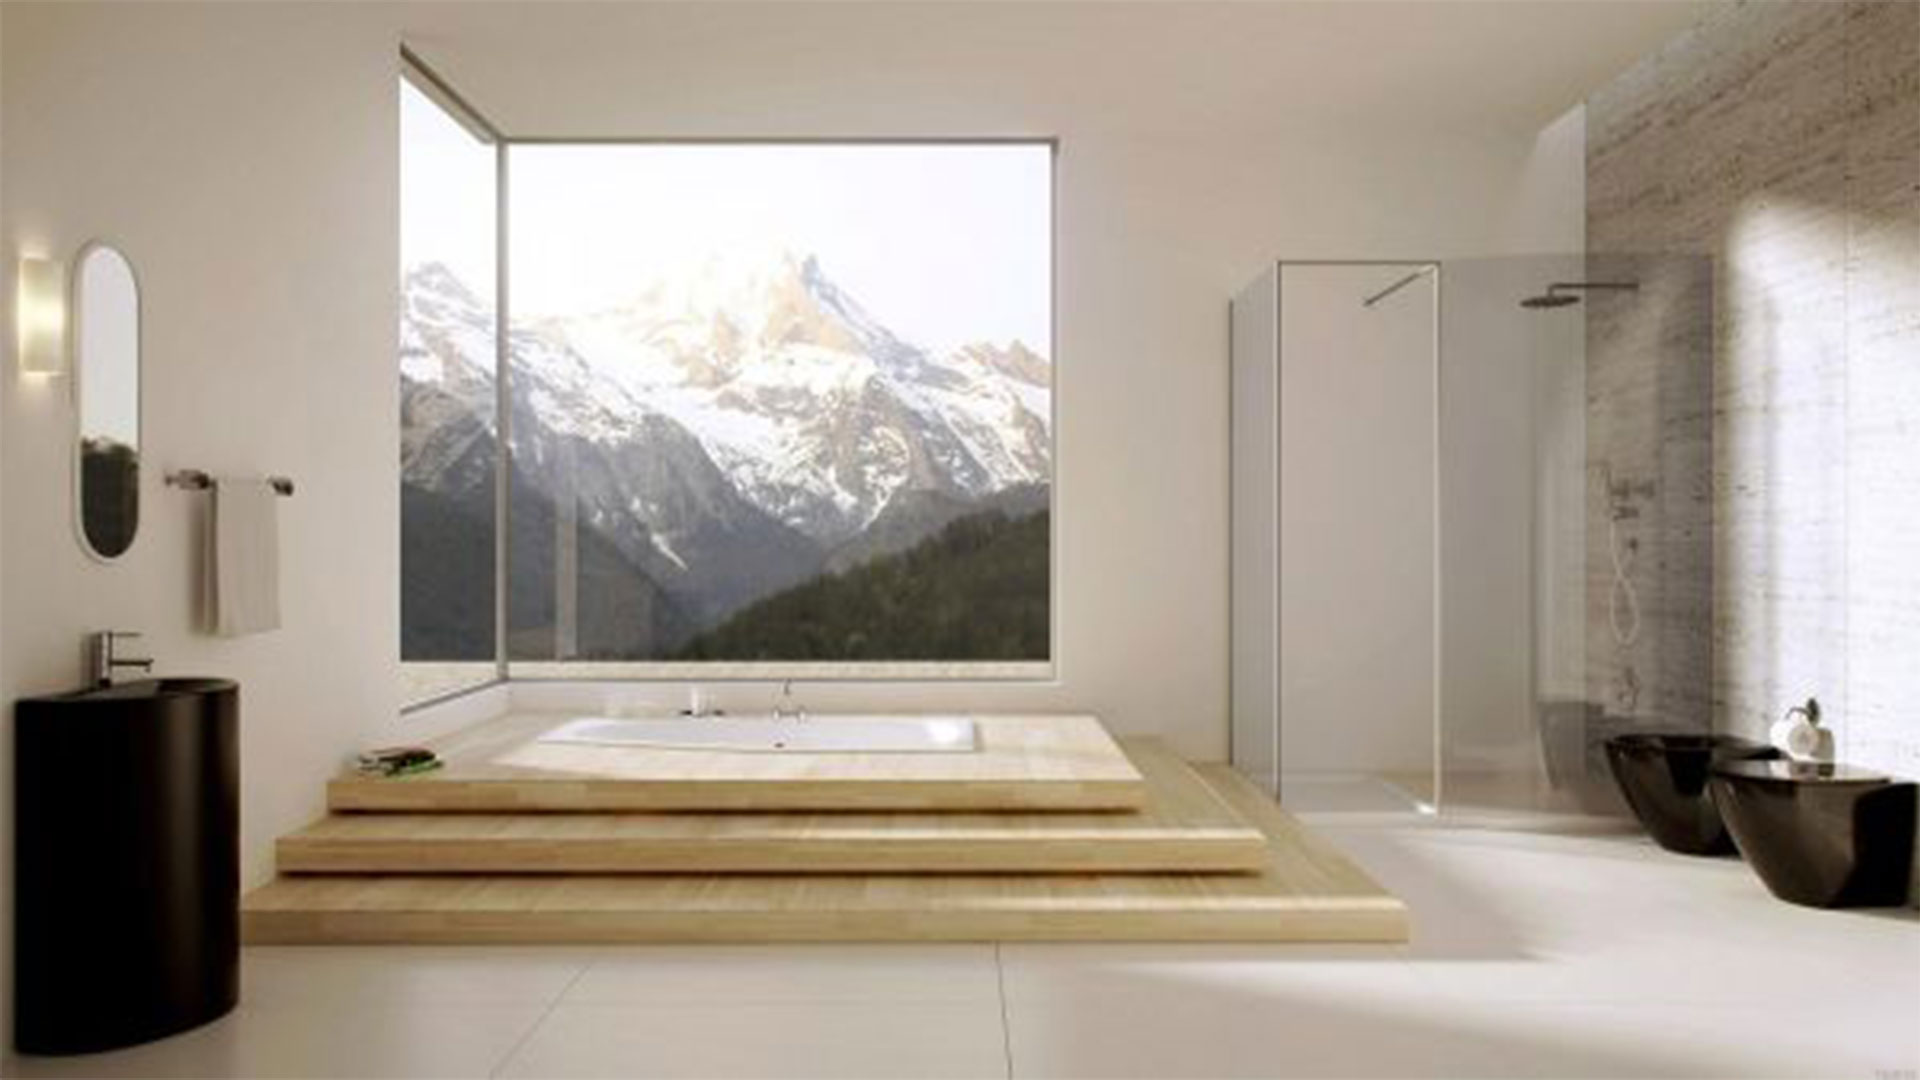 Check Out These Bathrooms On Steroids!